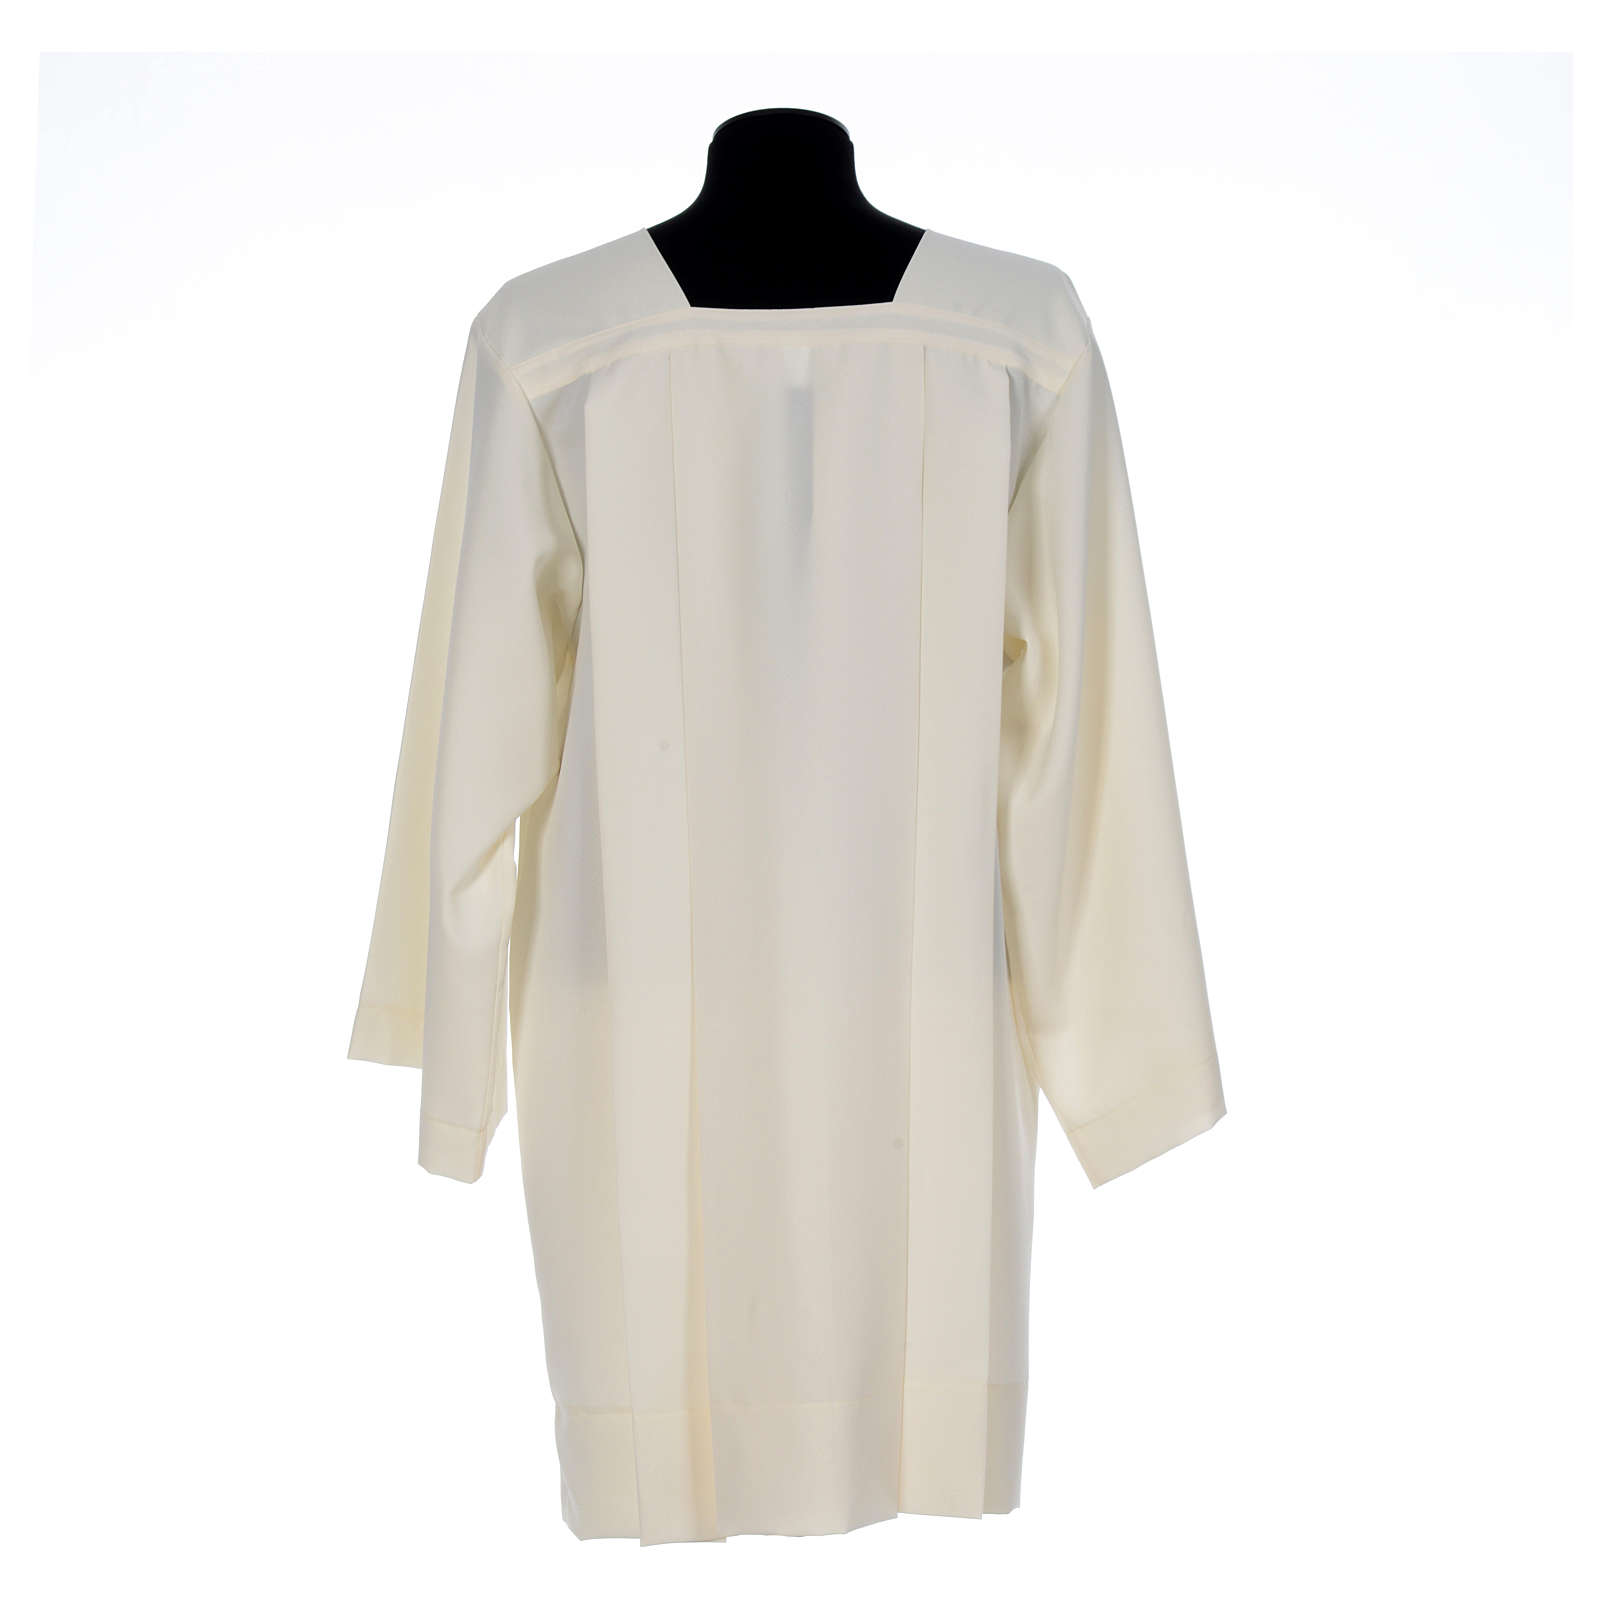 Ivory surplice in polyester with 4 pleats on front 4